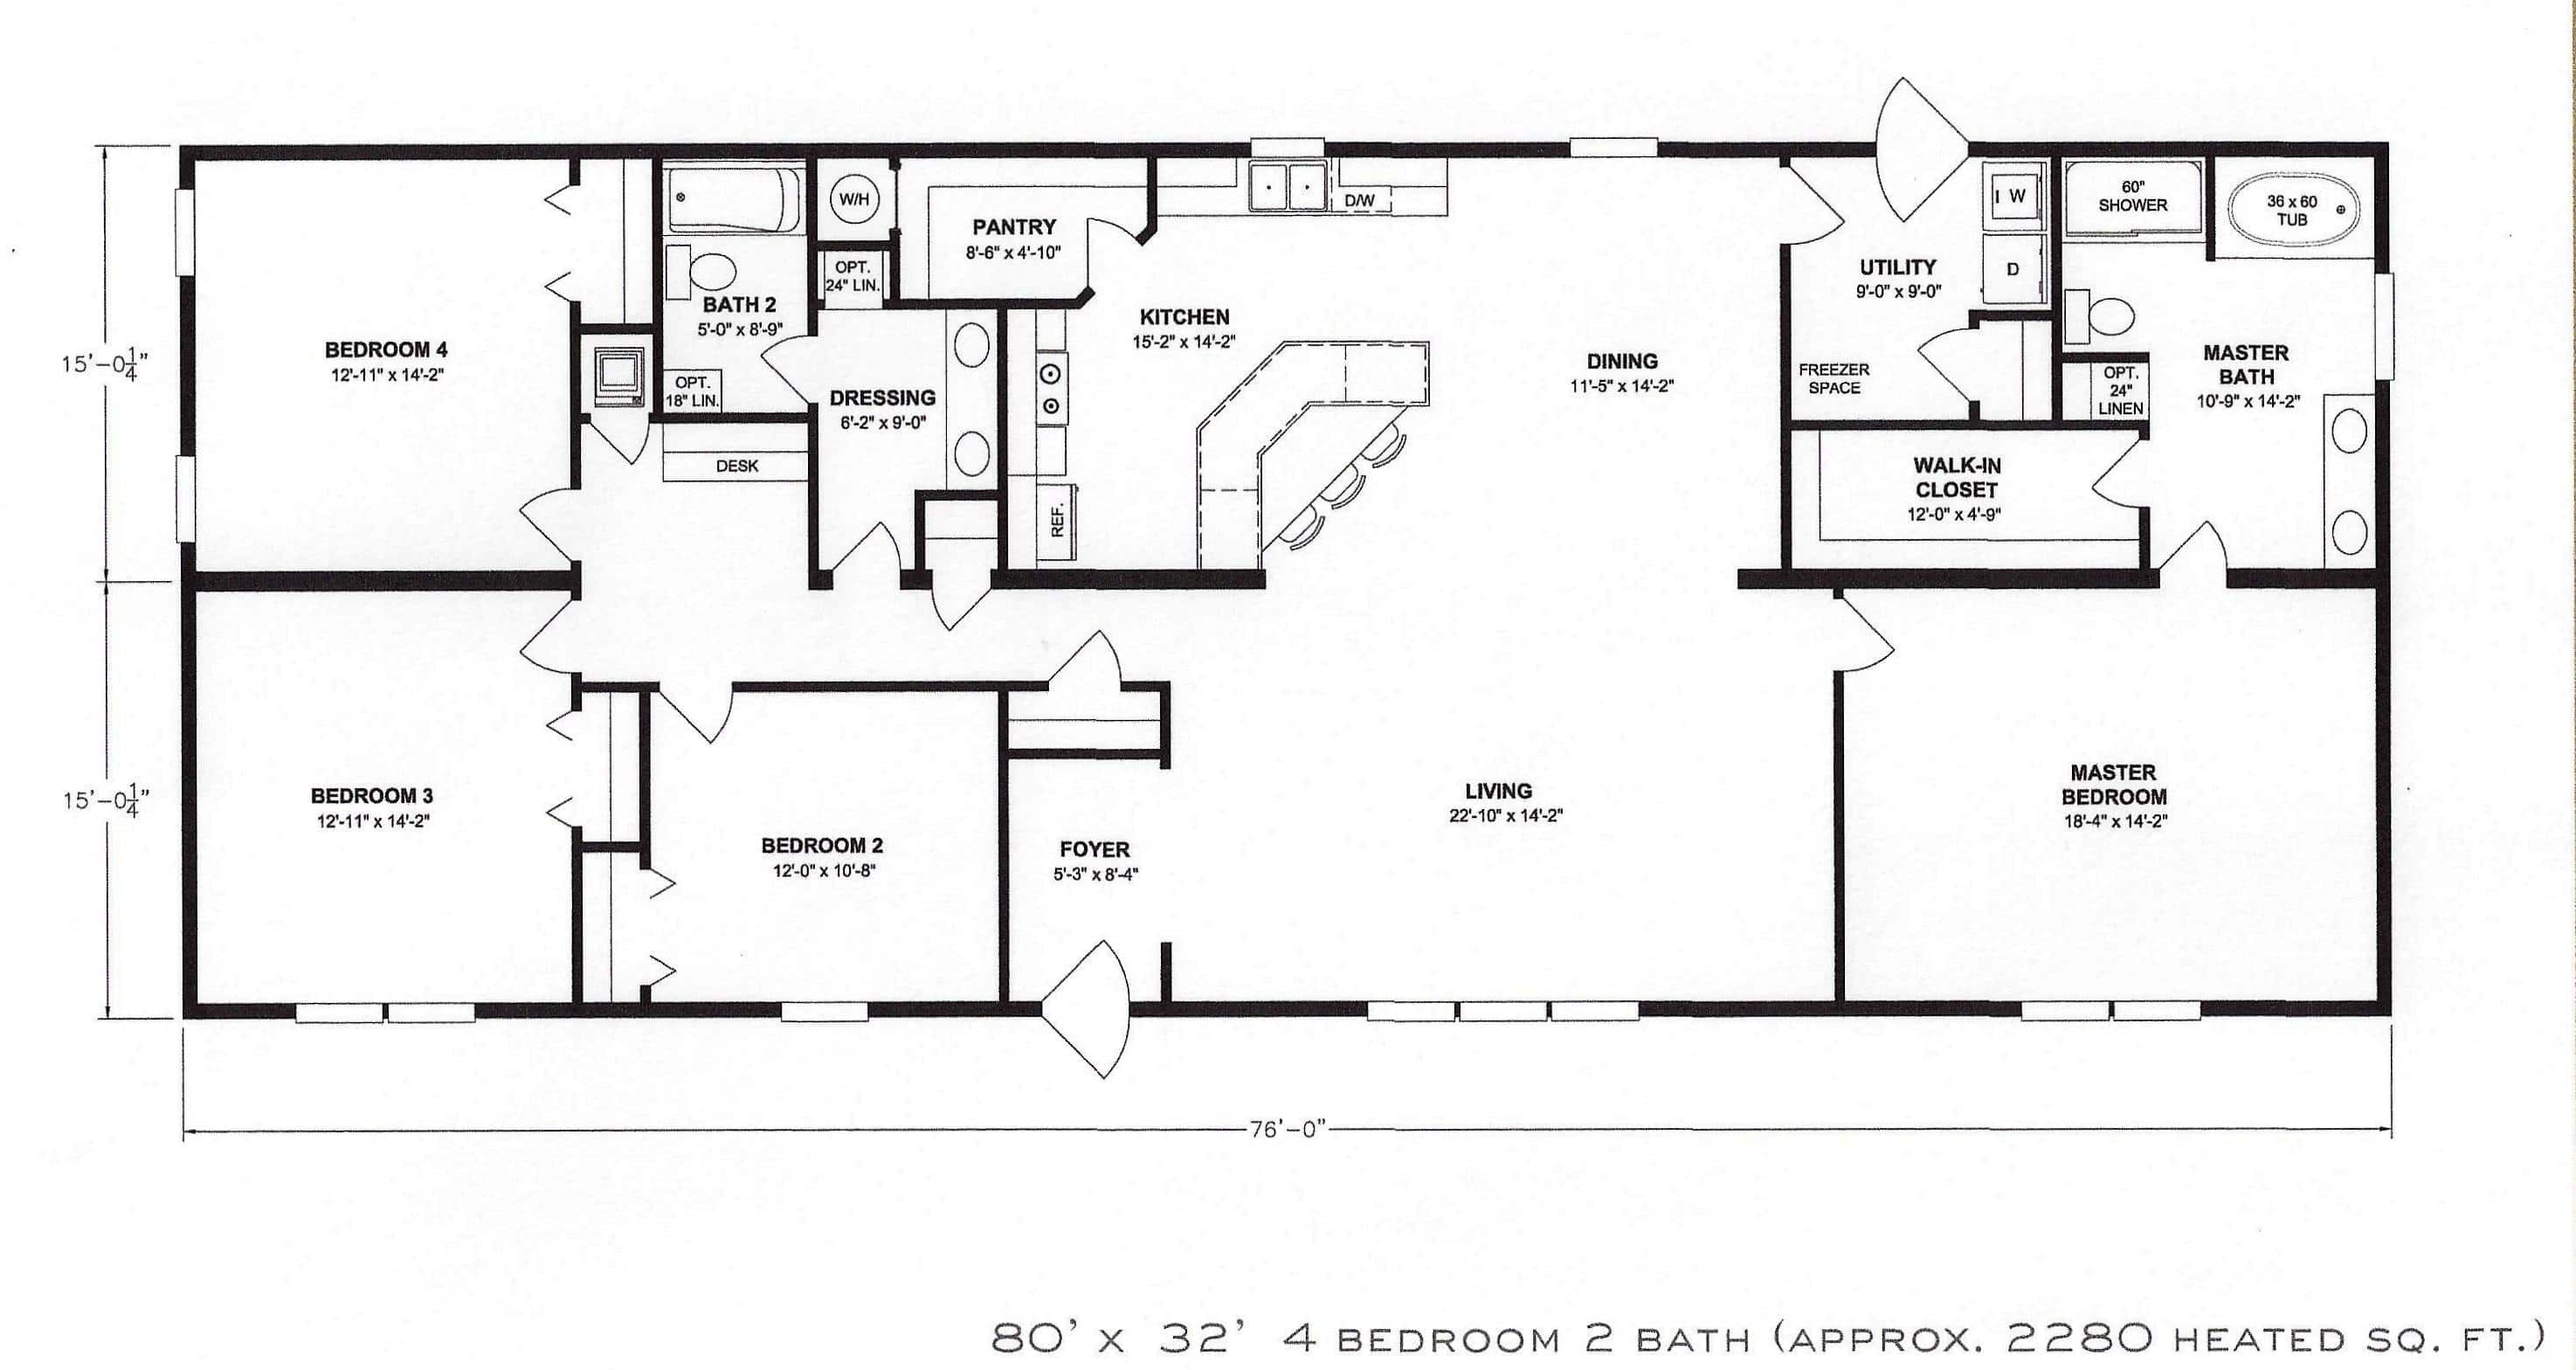 4 bedroom floor plans house layouts 4 bedroom sea breeze for Bedroom home floor plans for sale